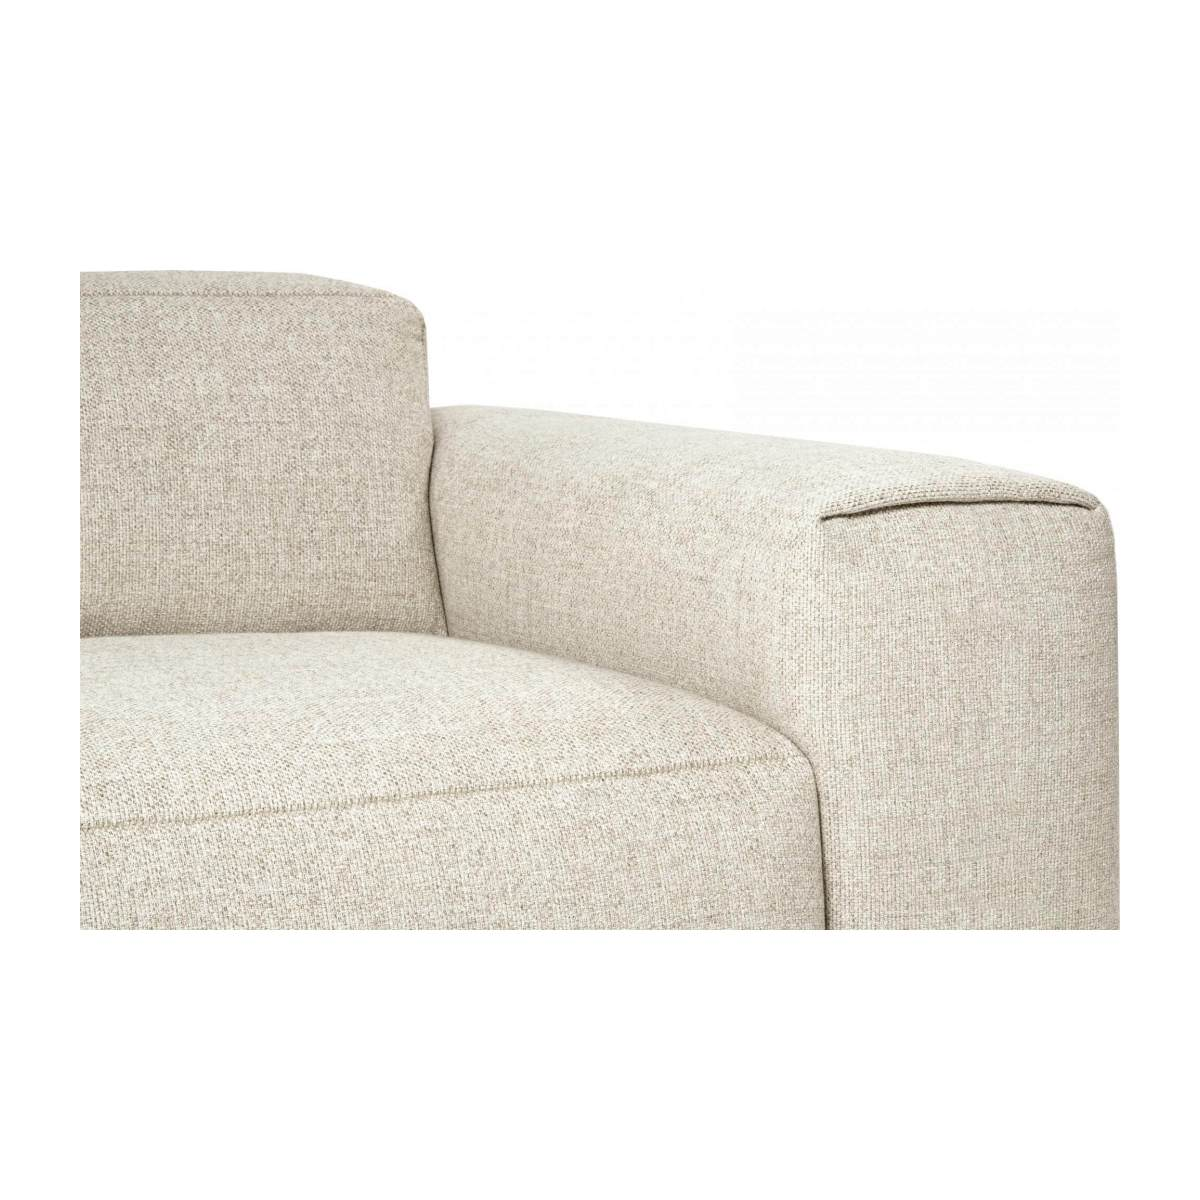 3 seater sofa in Lecce fabric, nature n°5